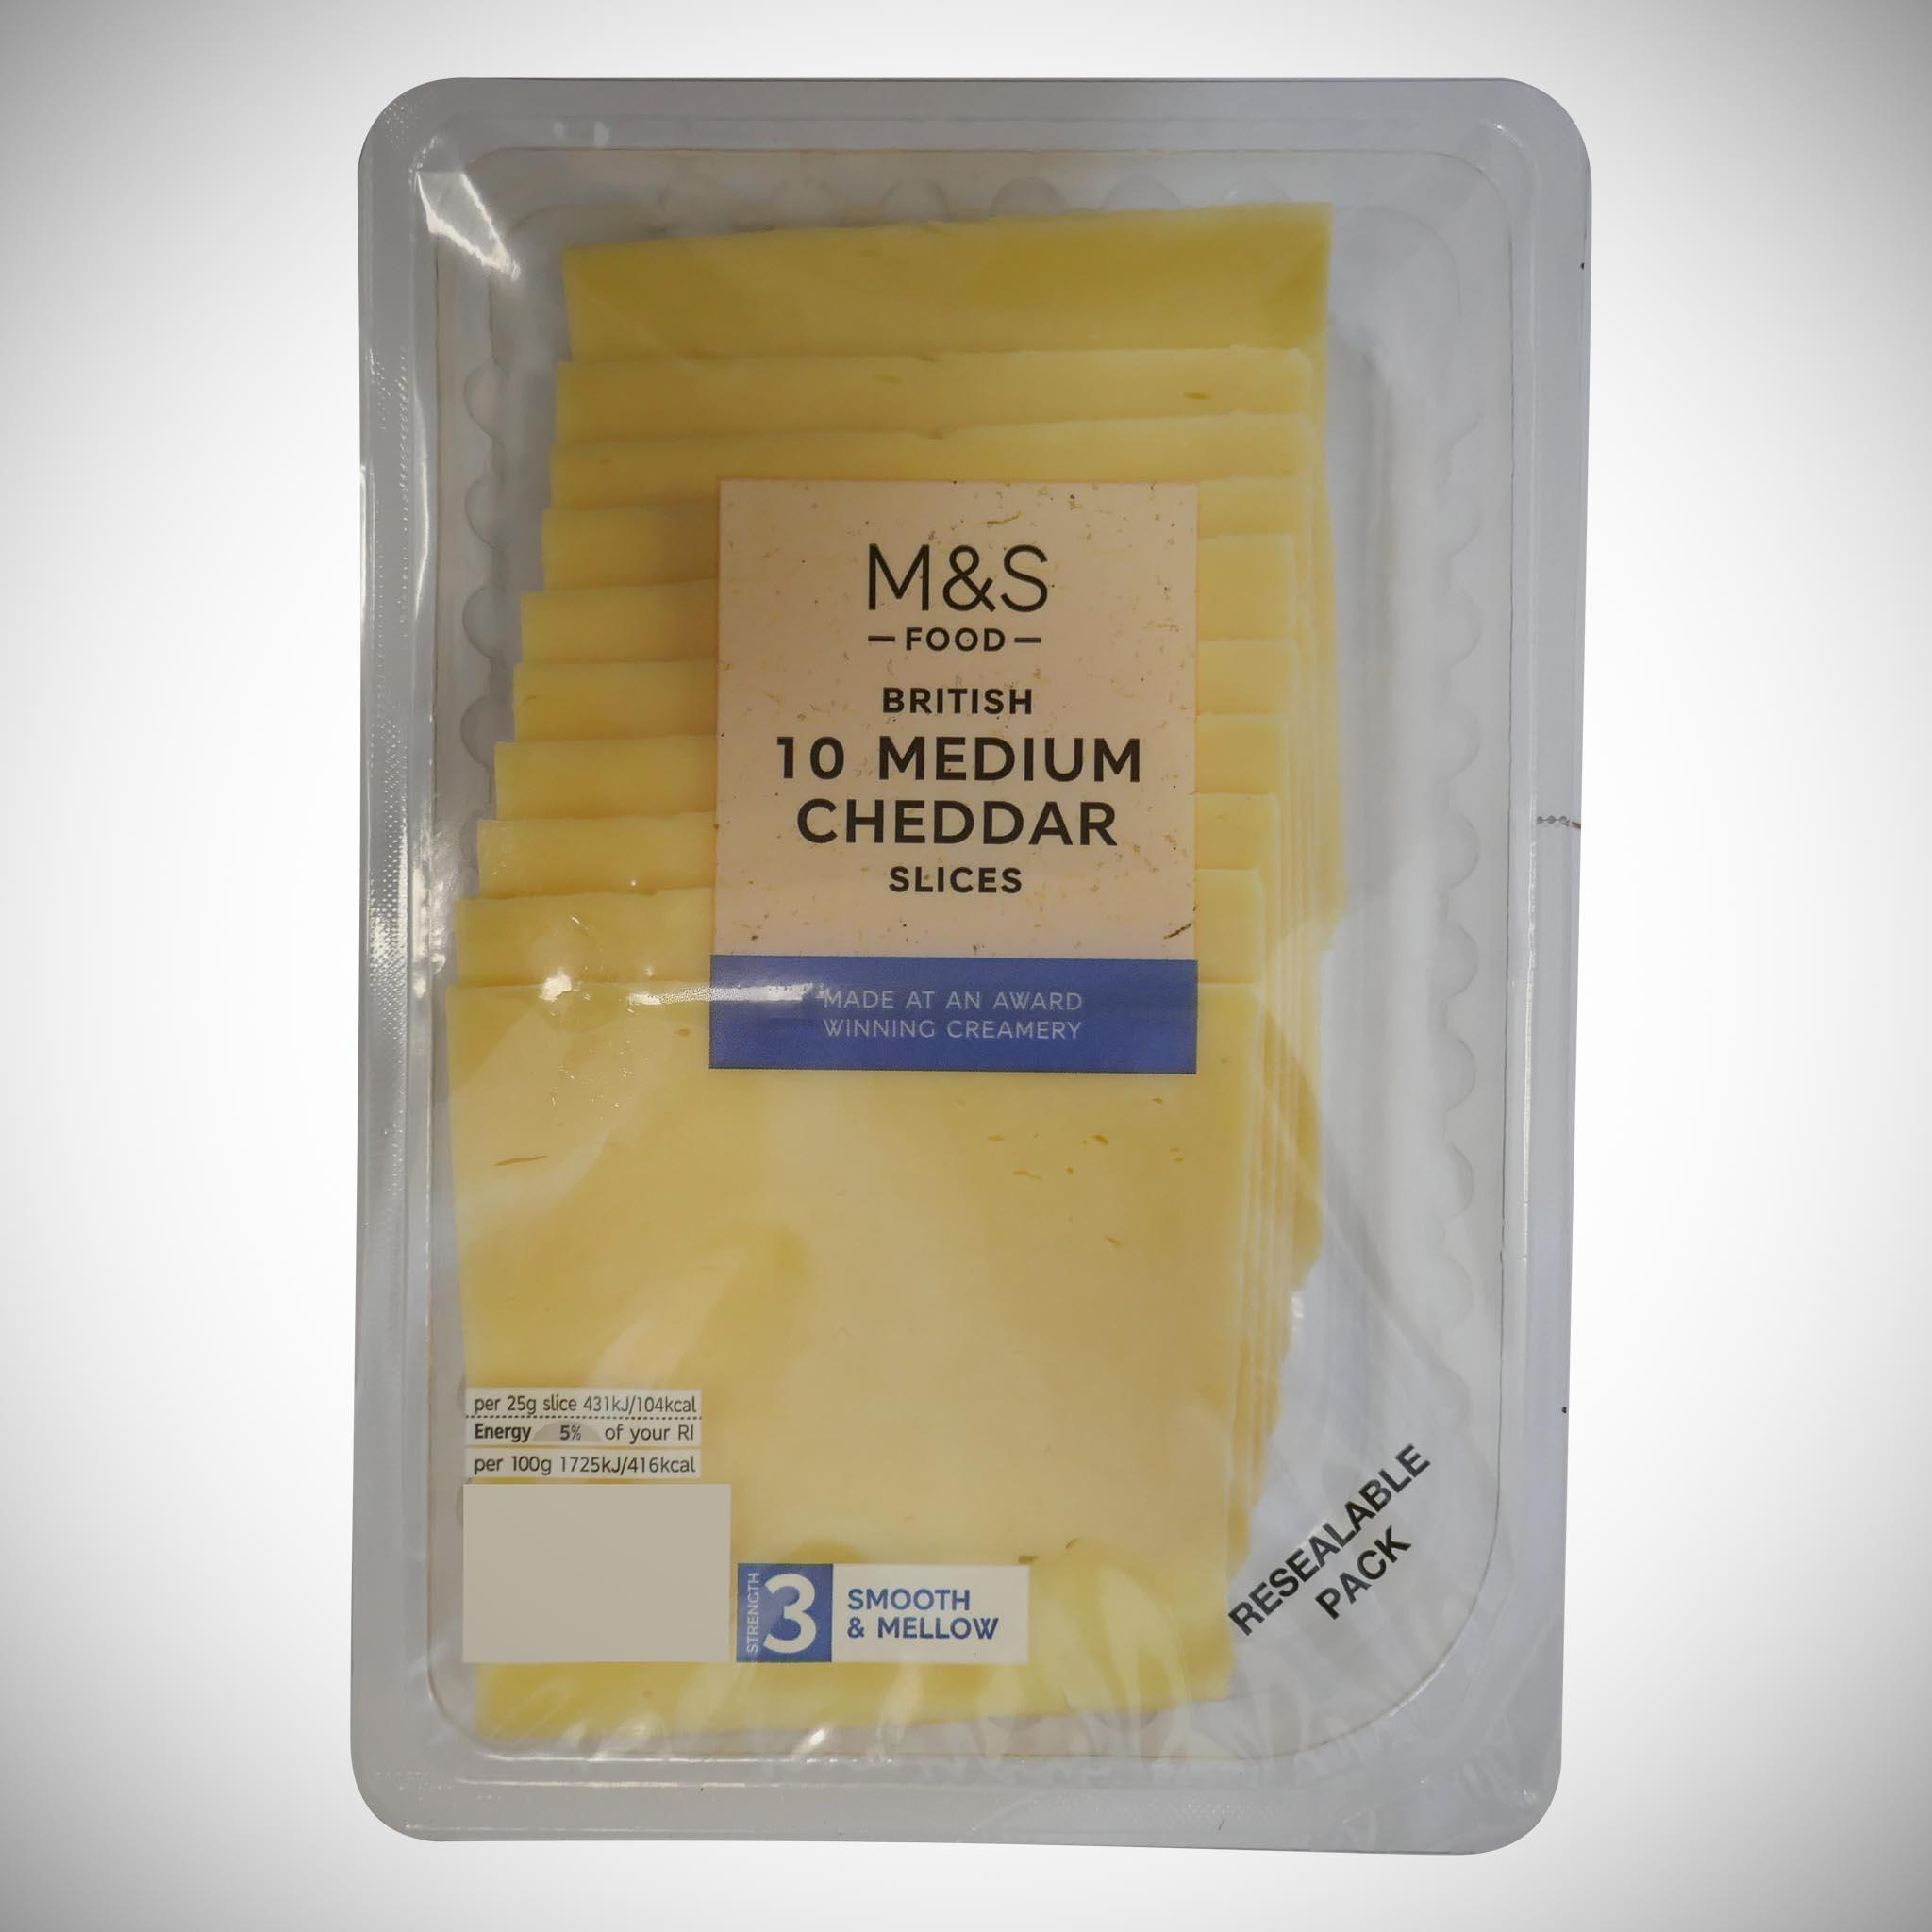 British 10 Medium Cheddar Slices 250g